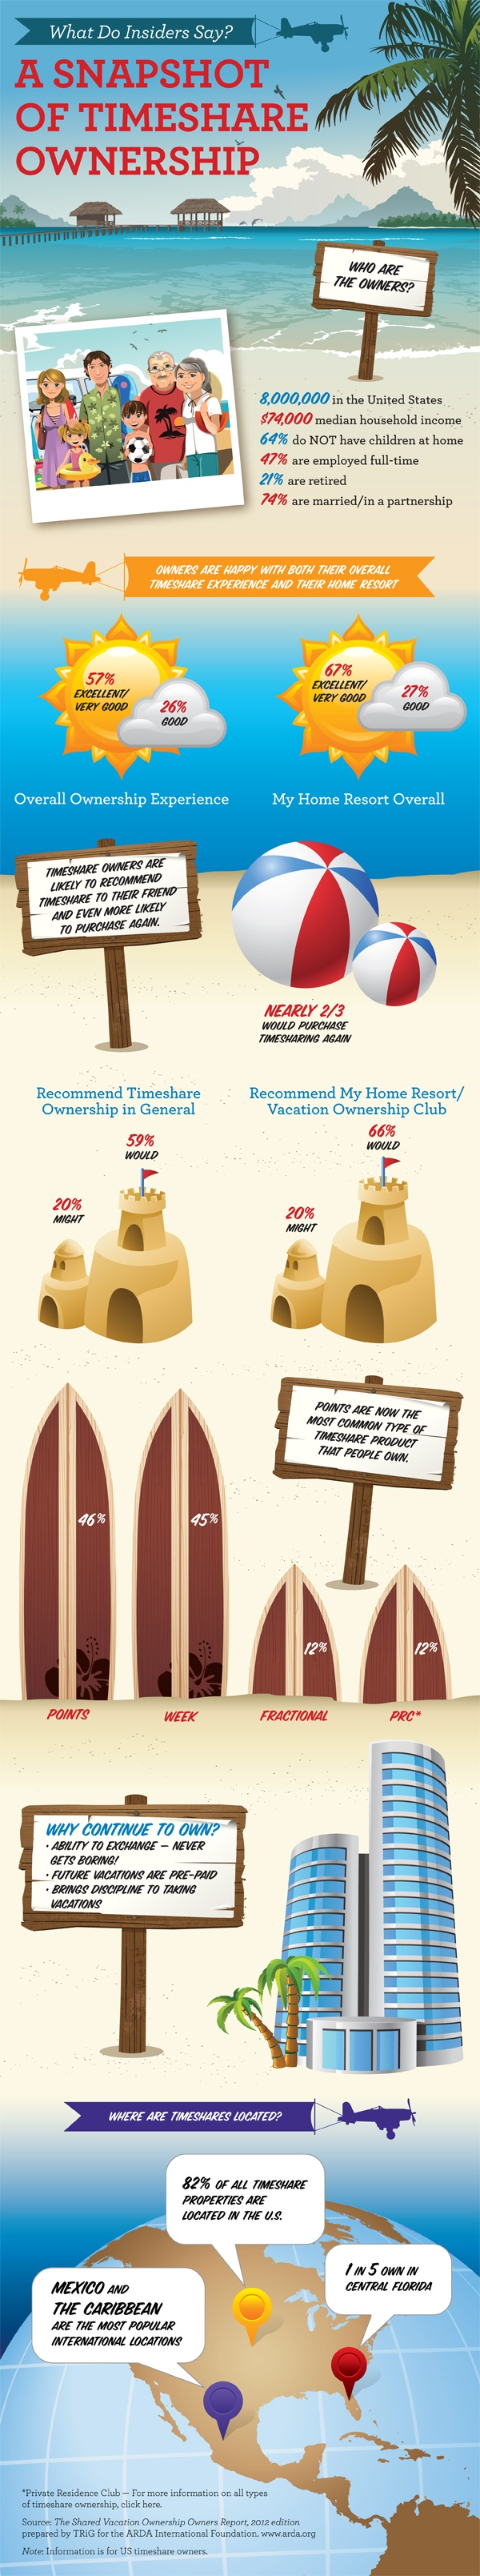 Find out what insiders are saying about #timeshare..check out our #infographic #snapshot of timeshare ownership!